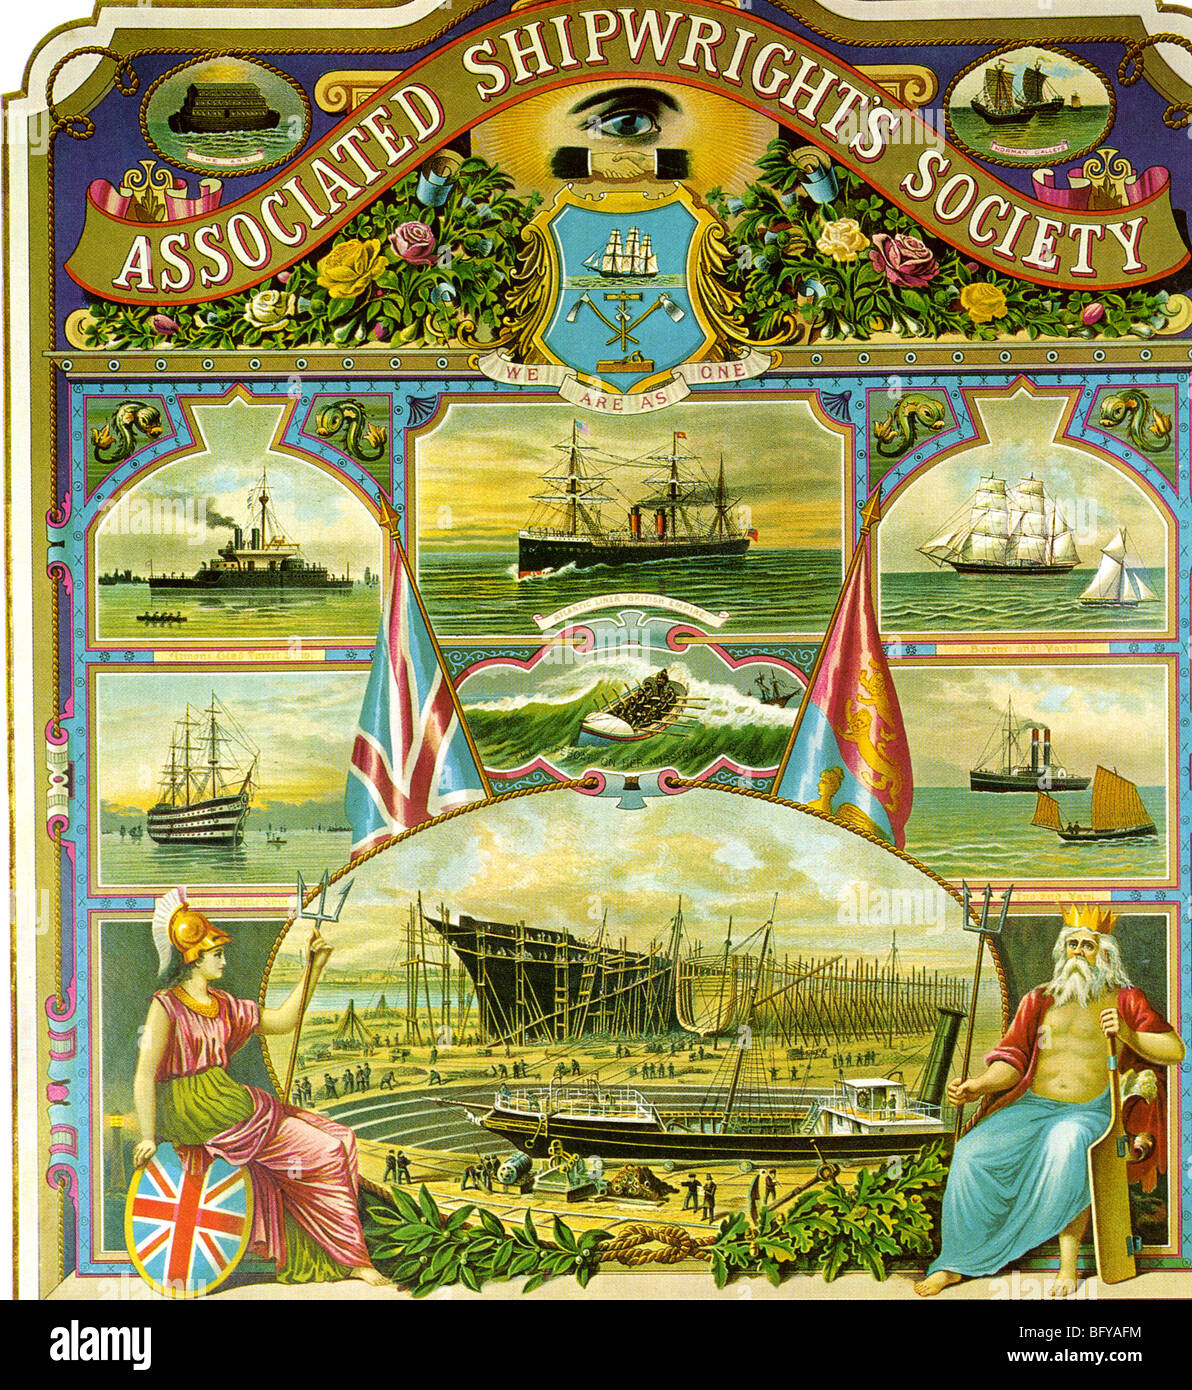 ASSOCIATED SHIPWRIGHTS SOCIETY - Membership form of a Victorian trade union formed in 1882 - Stock Image